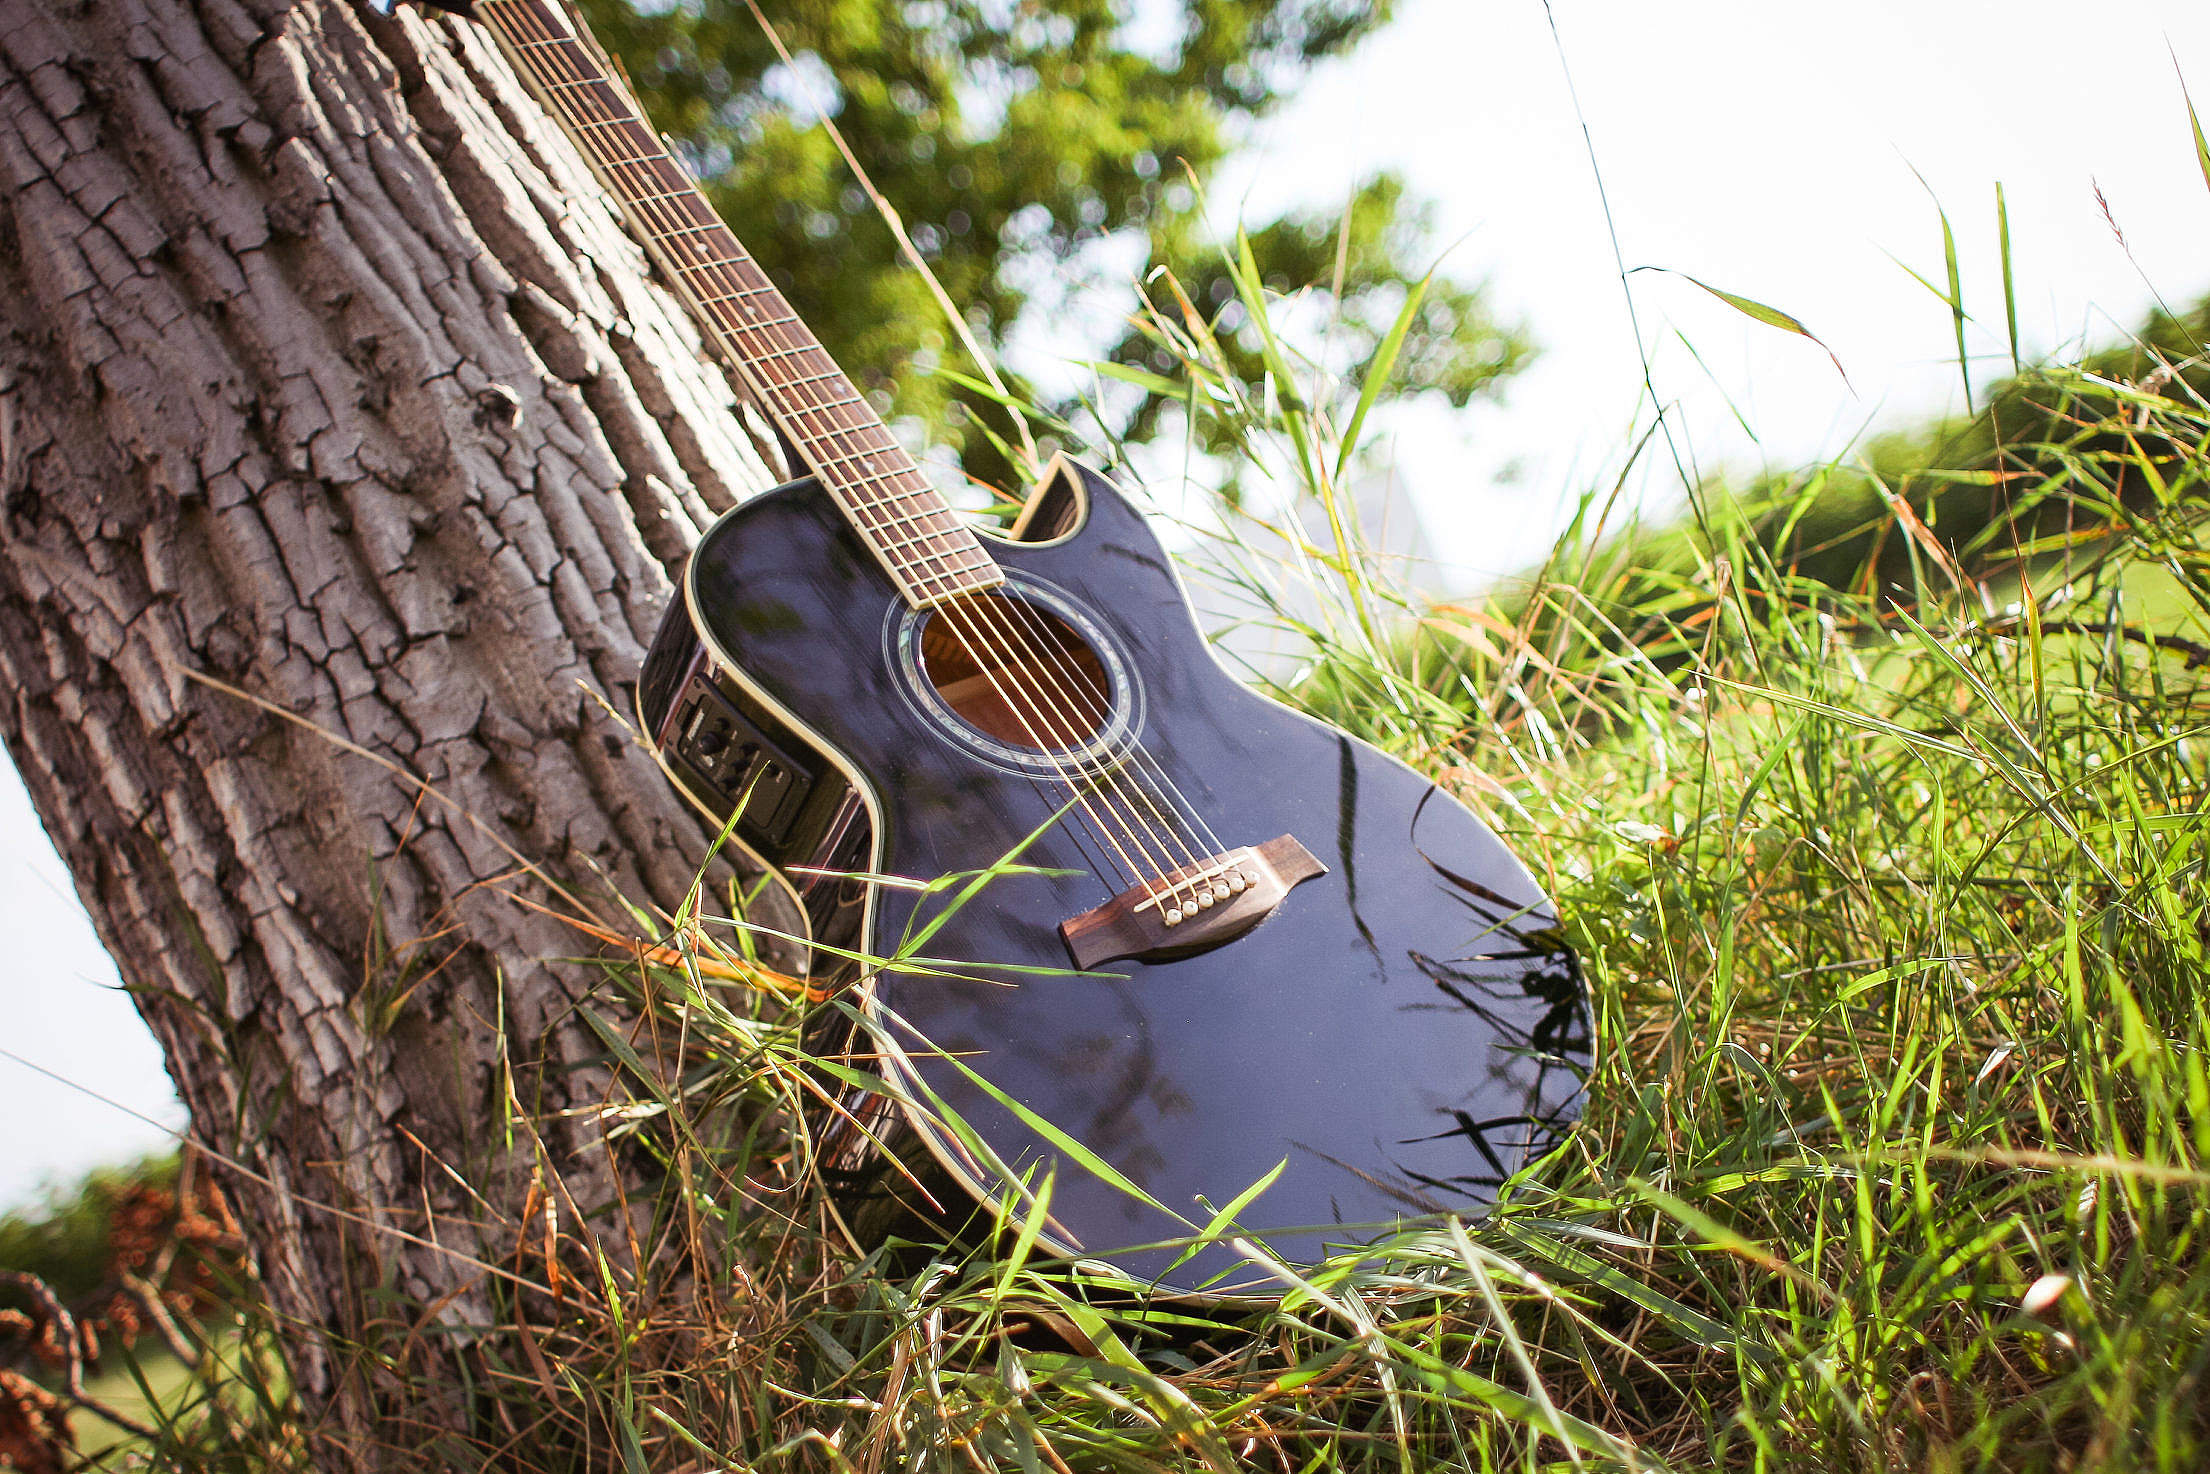 Guitar In Sunny Grass Free Stock Photo